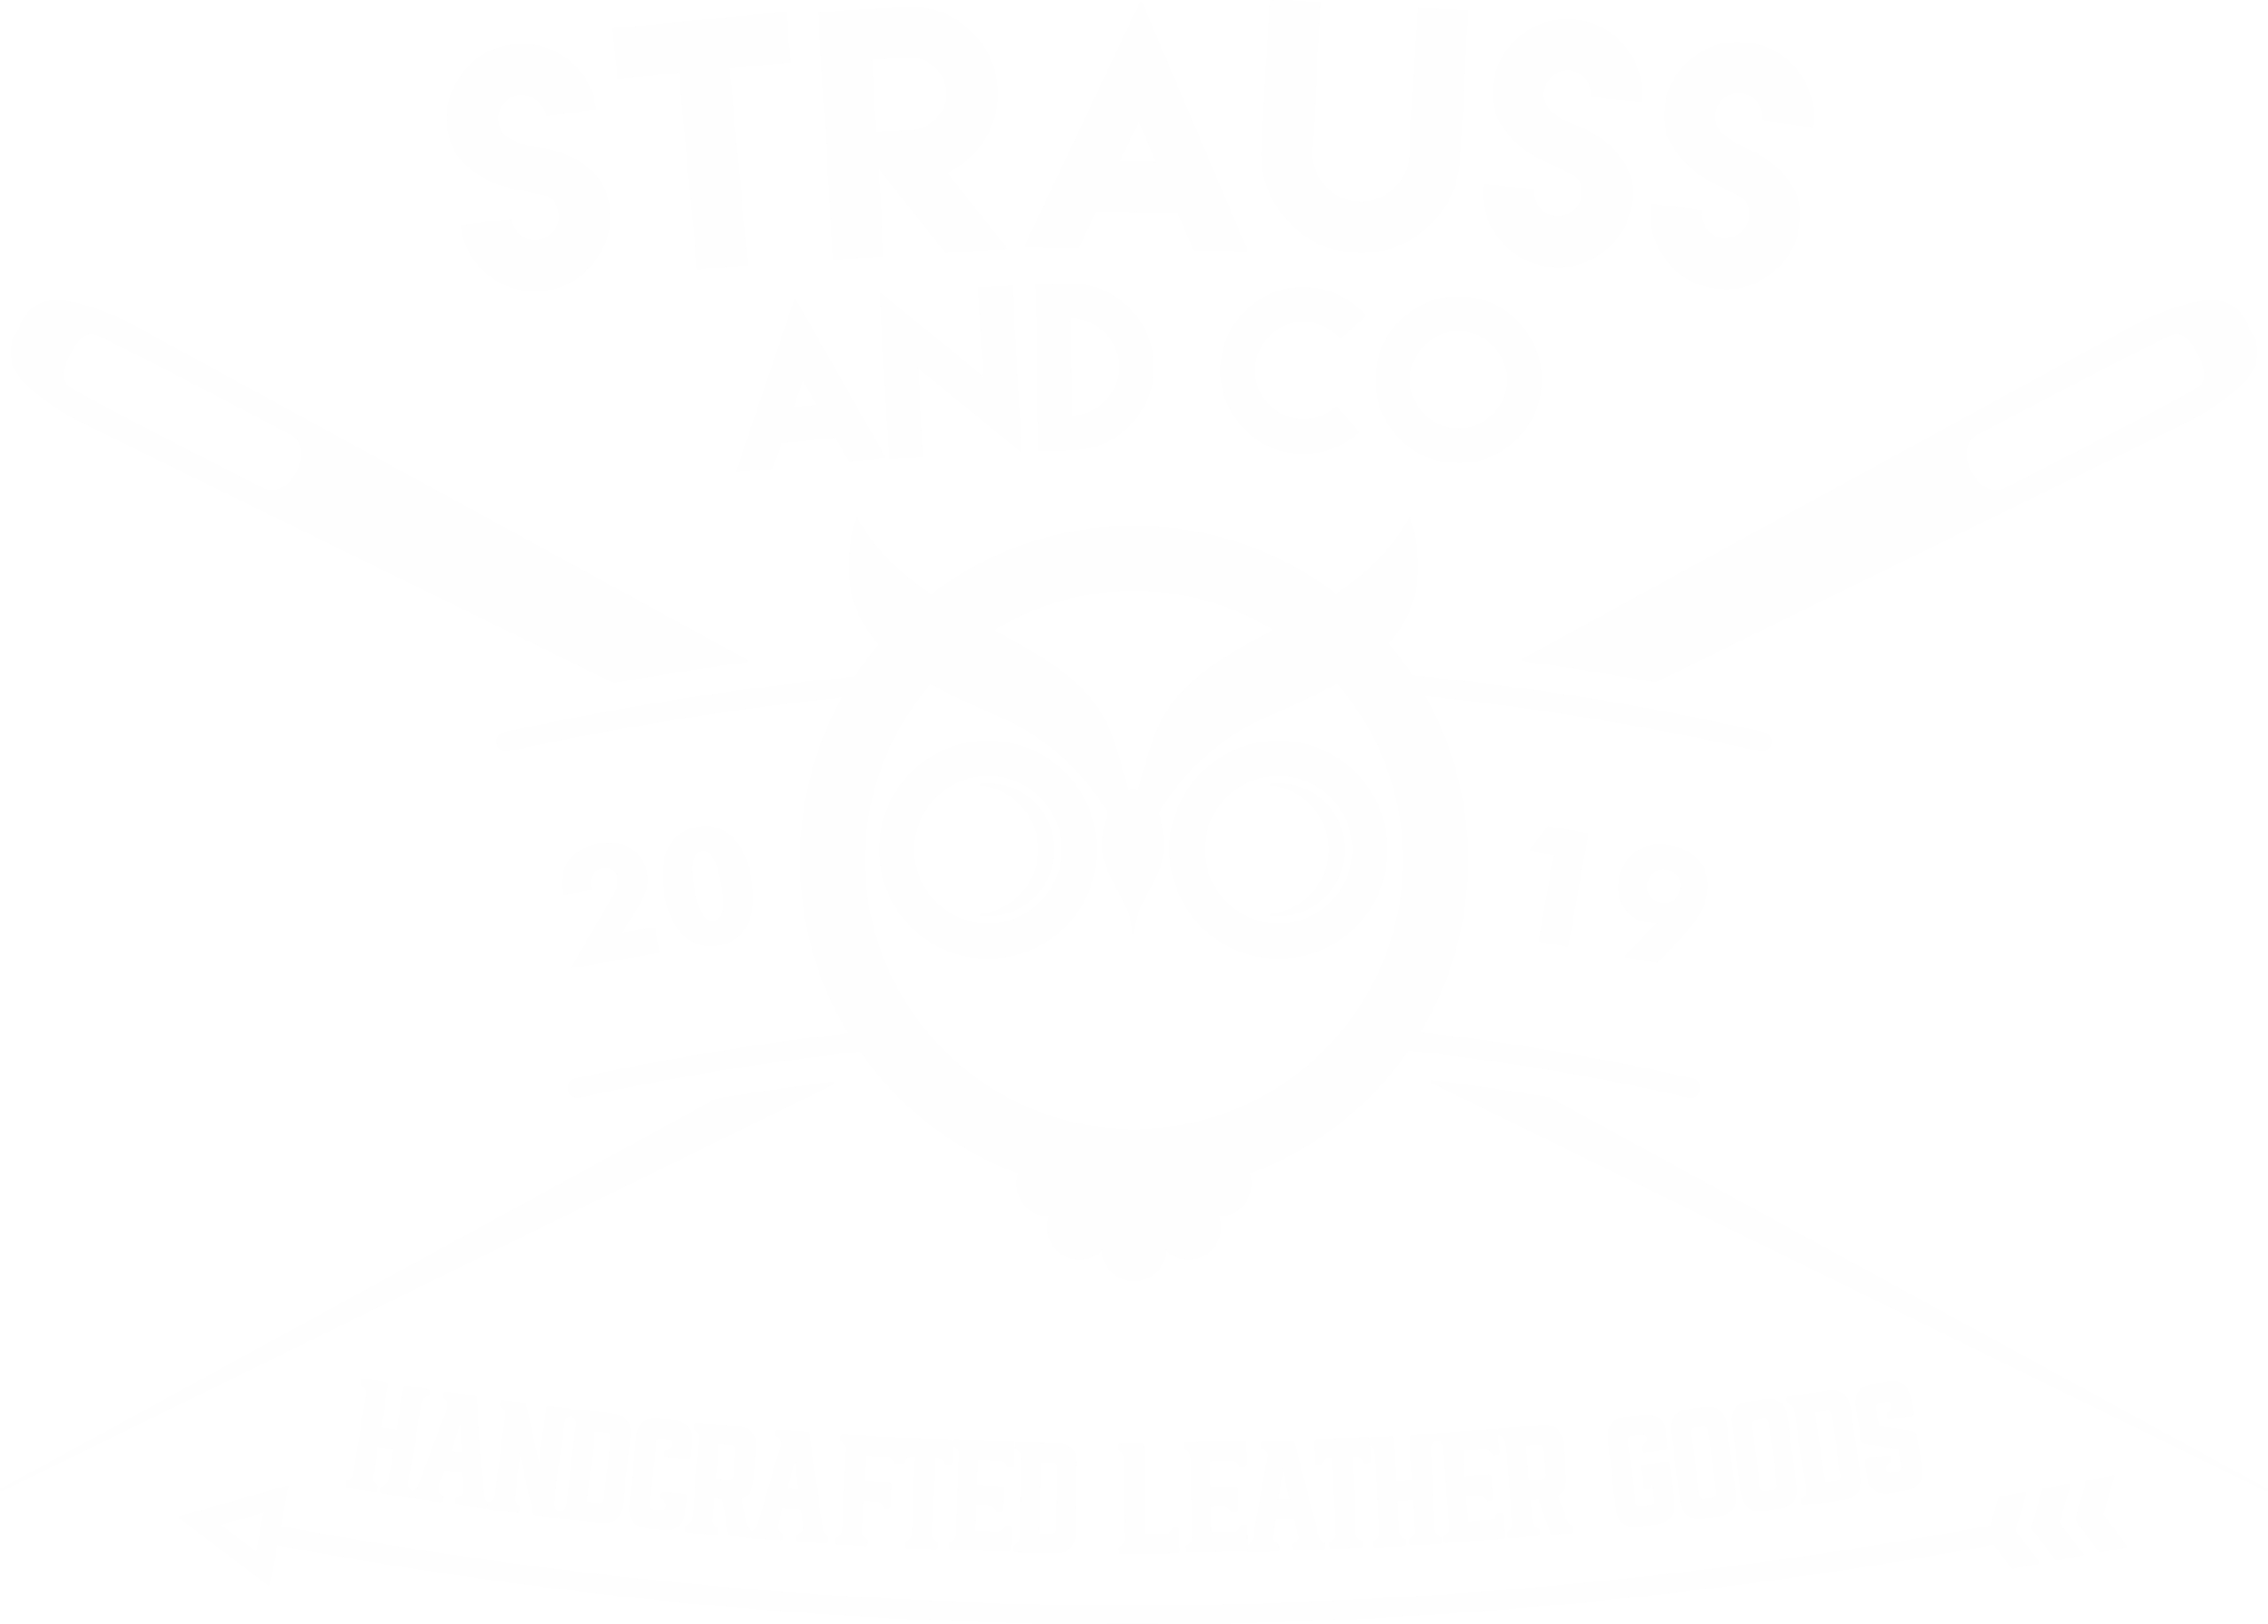 Strauss and Co